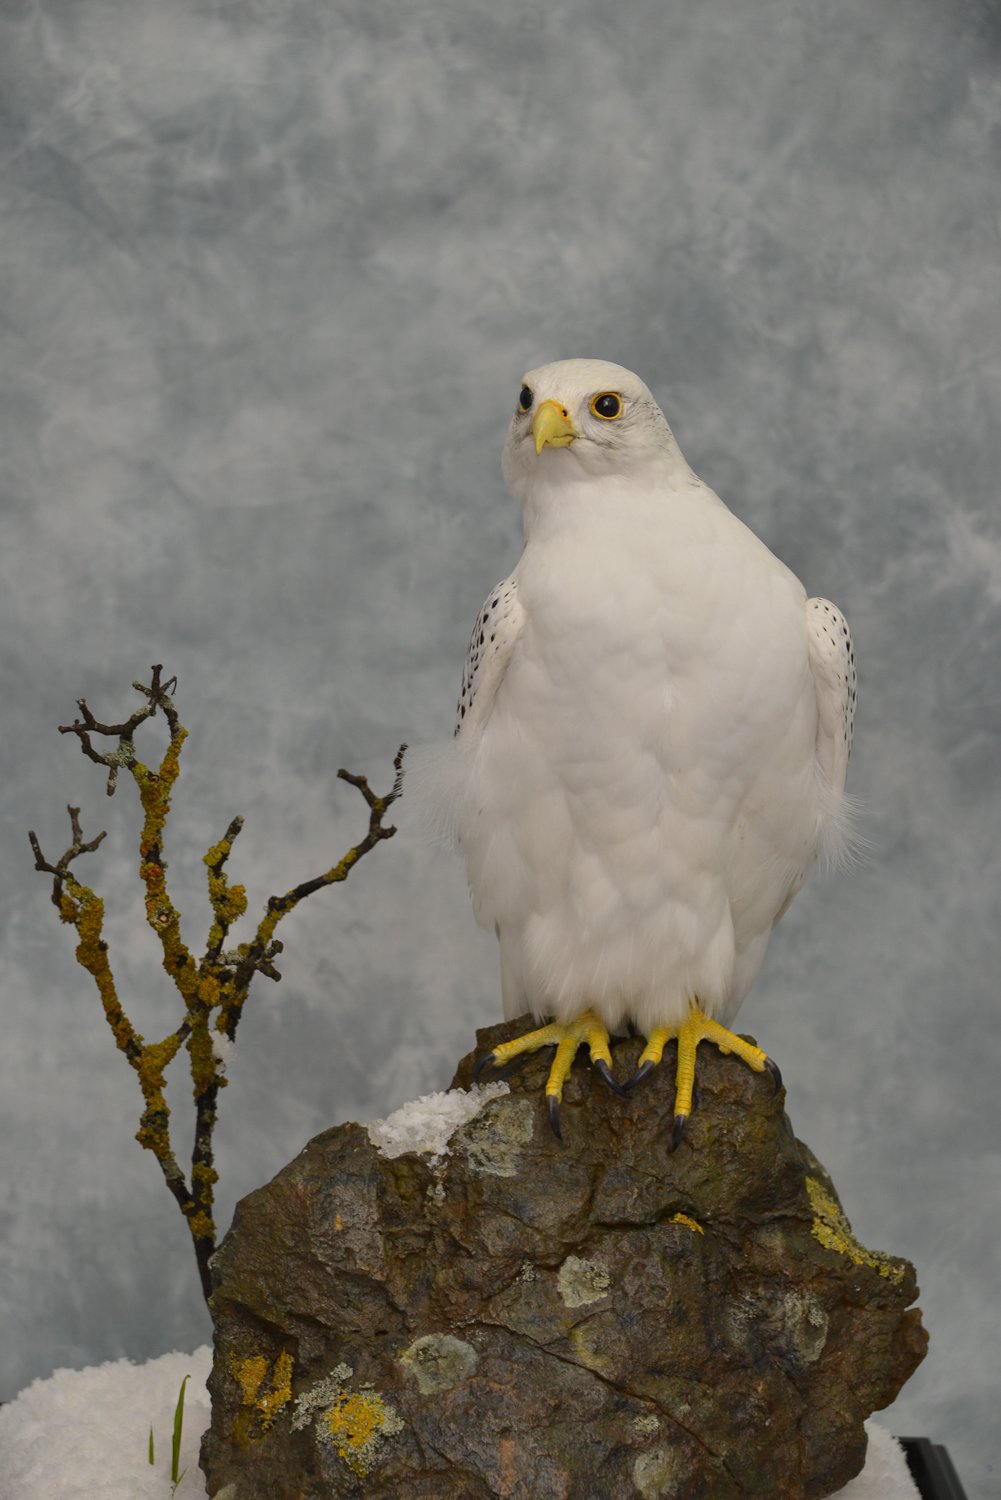 Taxidermy white Gyrfalcon in snow close up